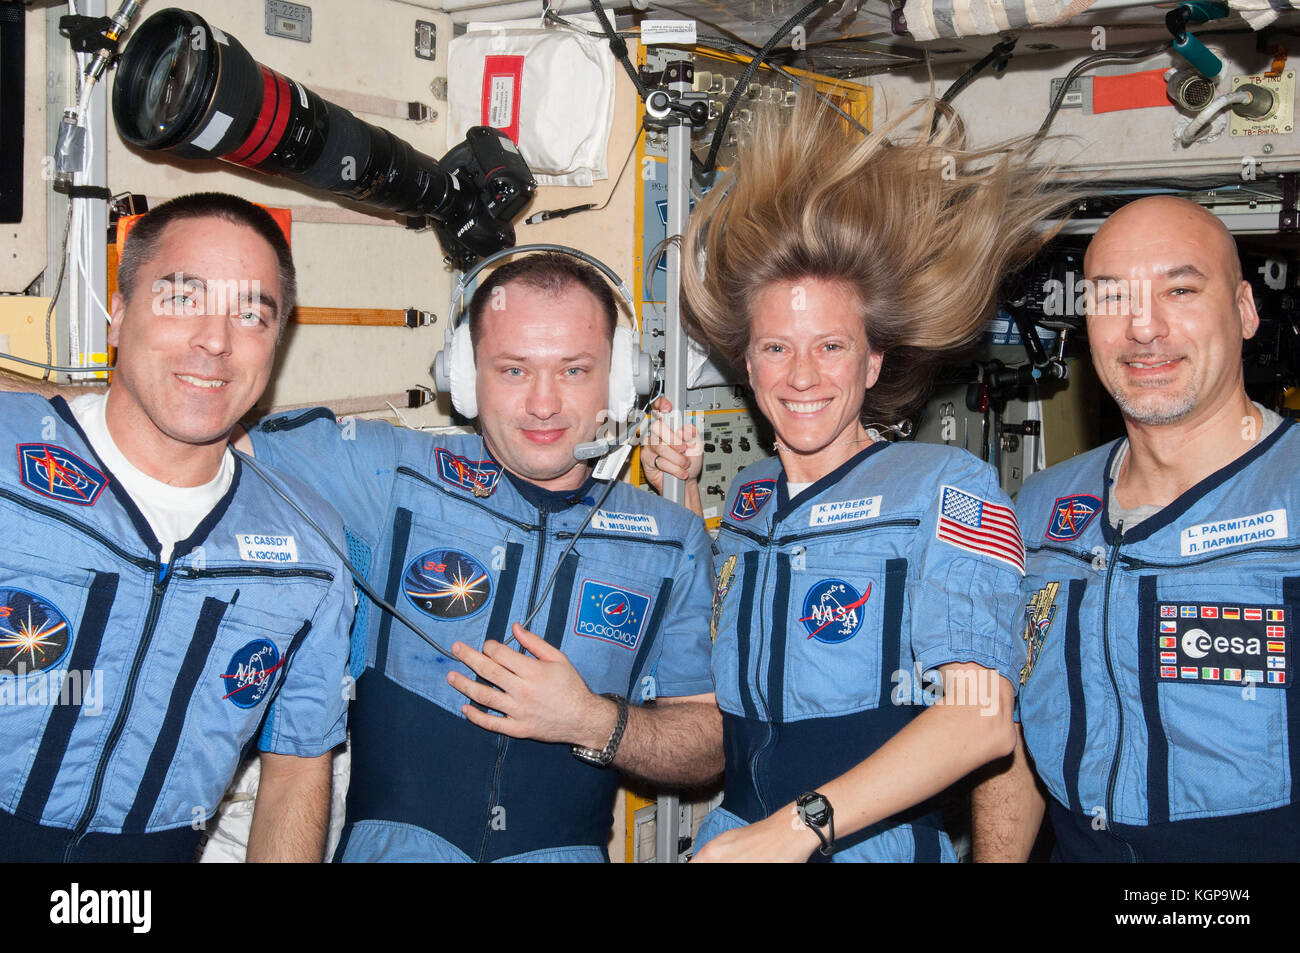 Expedition 36 flight engineers pose for a portrait in the Zvezda Service Module of the International Space Station. - Stock Image